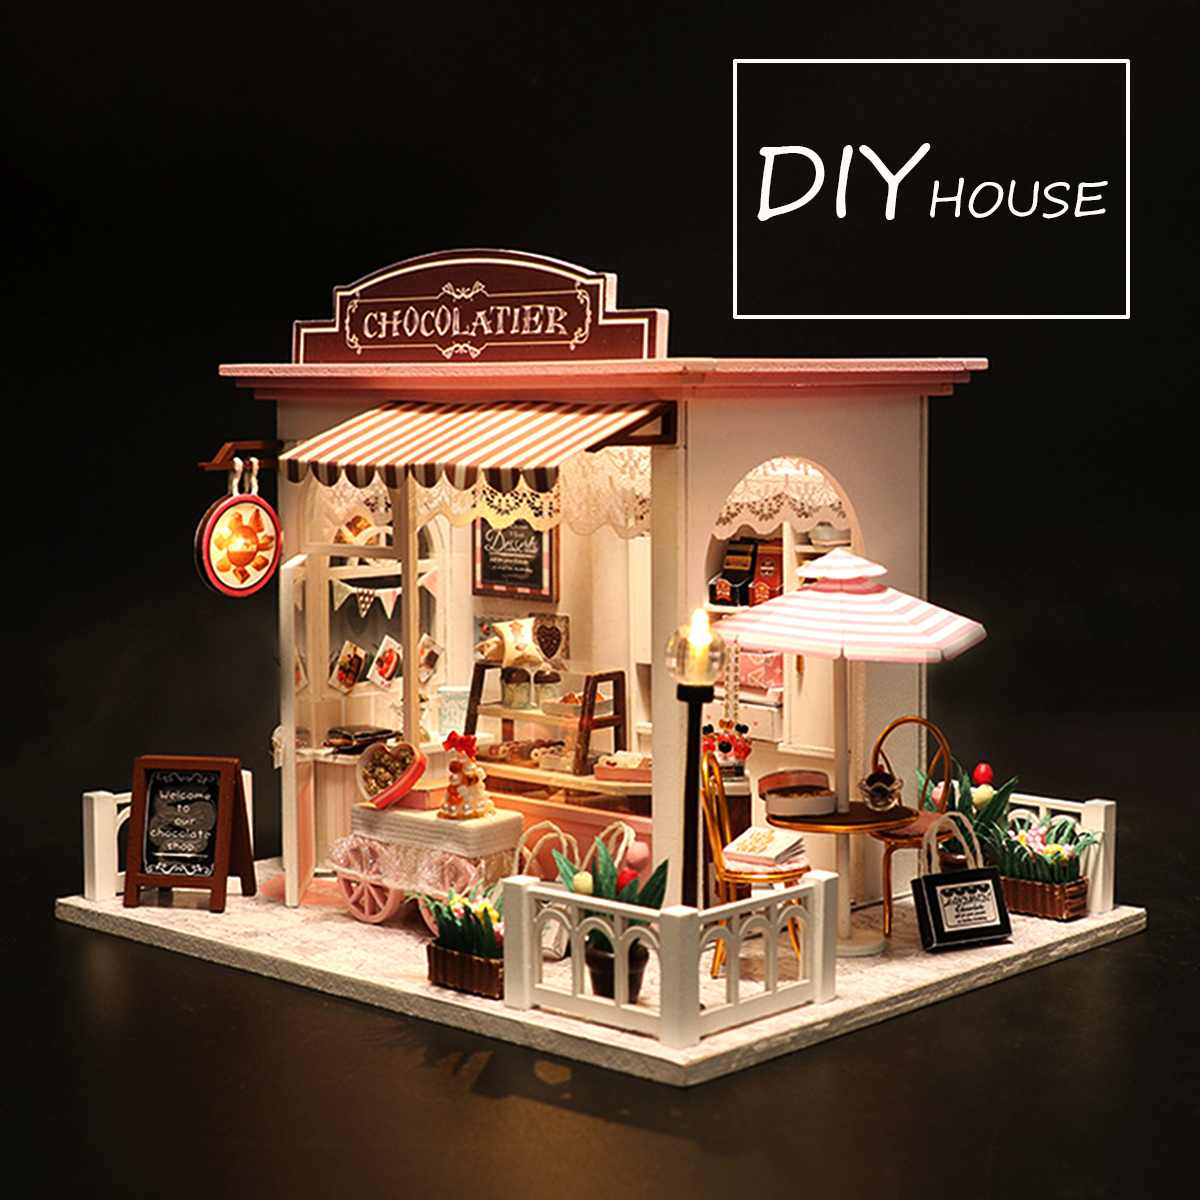 Doll House Miniature with Furniture DIY Wooden Miniature Dollhouse Toys for Children GiftDoll House Miniature with Furniture DIY Wooden Miniature Dollhouse Toys for Children Gift